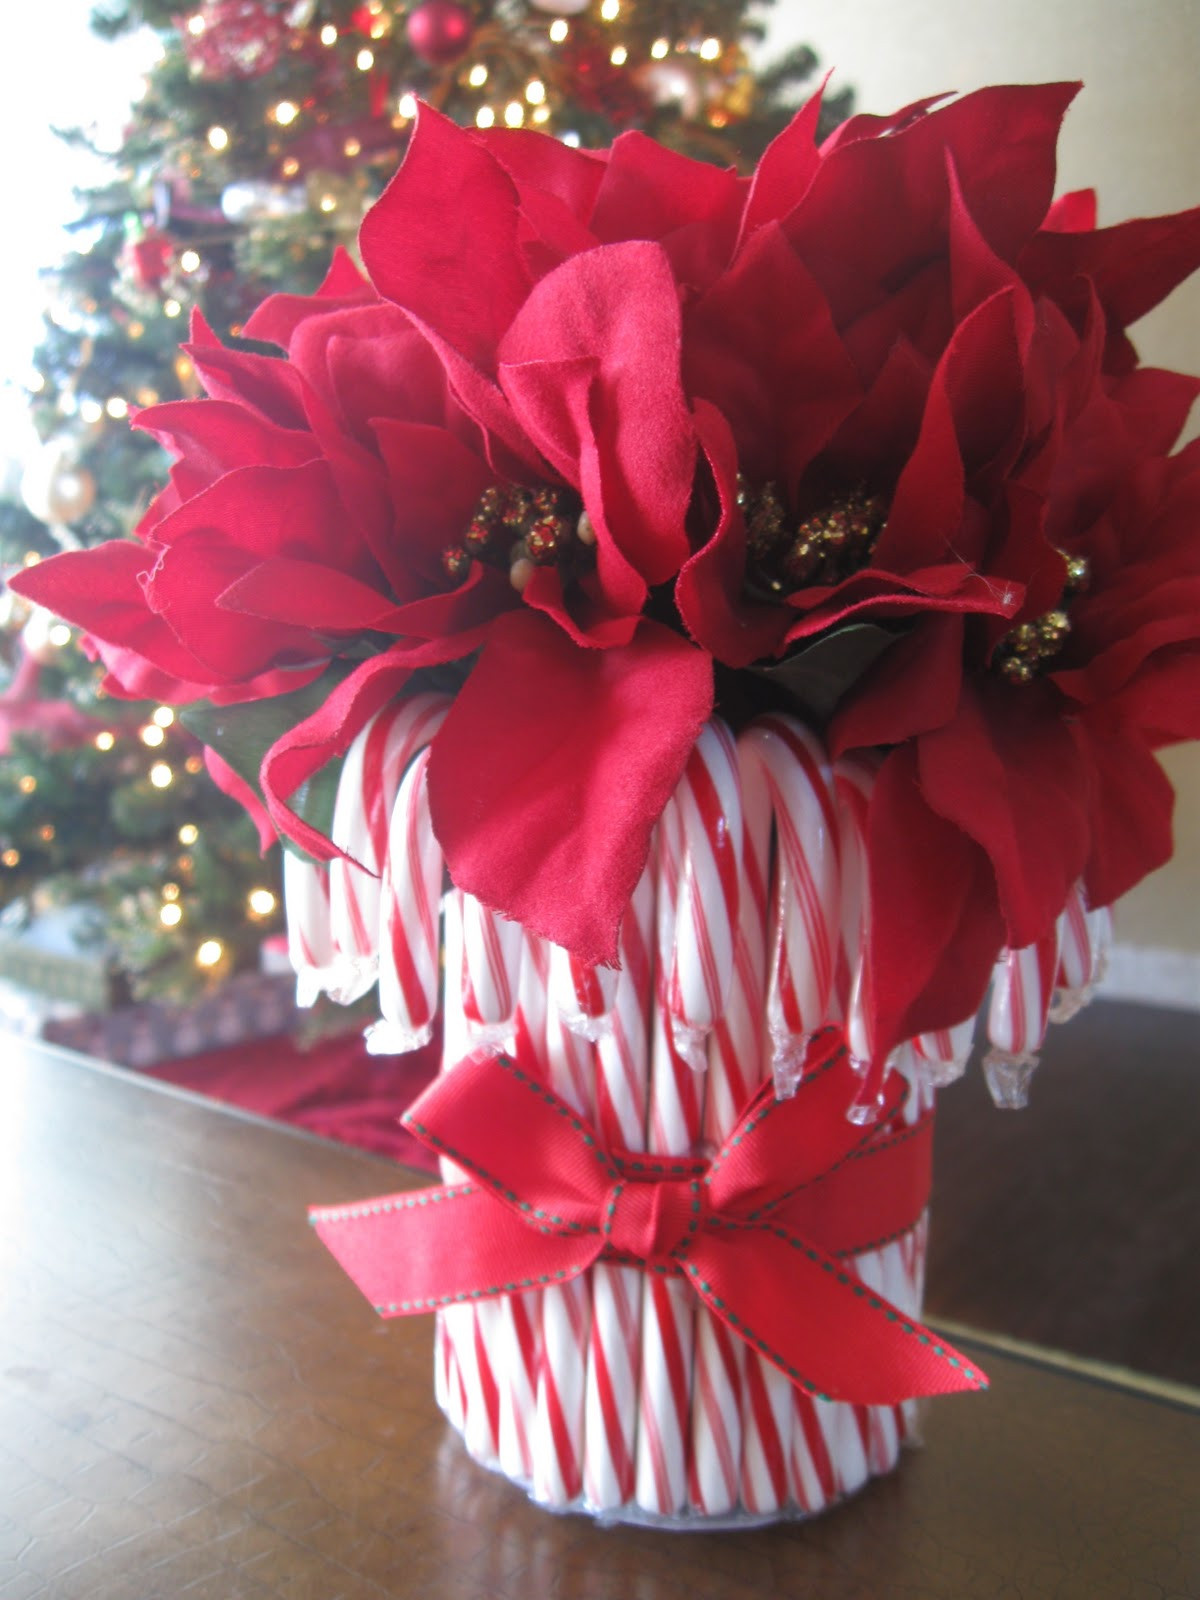 Candy Cane Ideas For Christmas  DIY Candy Cane Vase